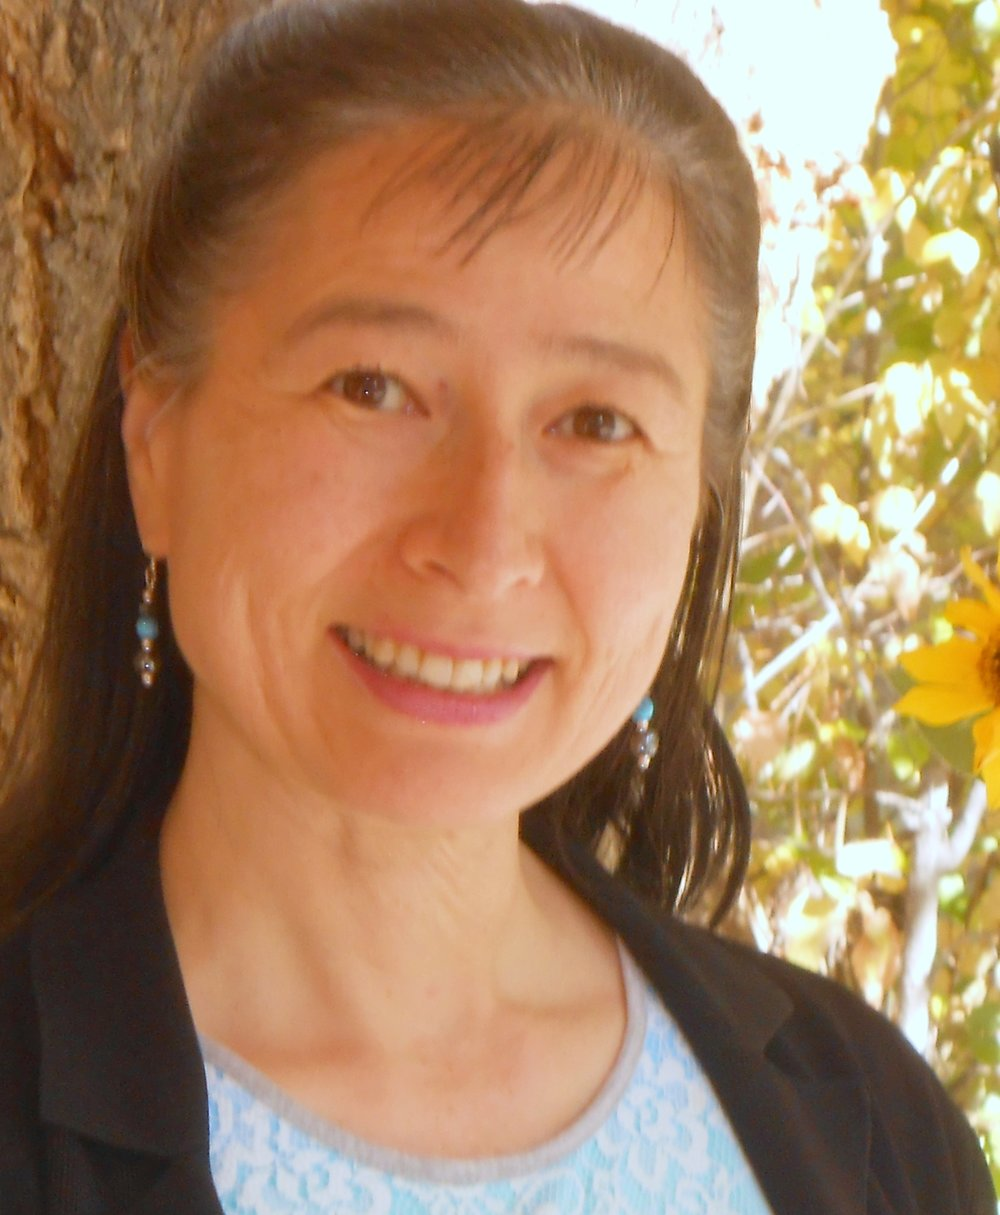 Kyoko Moriyasu Hummel  LMT #072 Licesnsed Instructor # I-119 Since 1991, Kyoko has offered various massage and spa therapies.  In October 2000, Kyoko founded Essential Massage and Spa Therapies.  She created our Anti-aging Eye Pampering and Herbal Foot Wrap therapies. In 2016, Kyoko created the Crystal Cocoon Detox Sessions in response to her own profound healing with the Biomat. Kyoko specializes in Cranio-sacral therapy and prenatal massage.  Cranio-sacral helps to enhance the flow of the cerebro-spinal fluid using gentle palpation and is profoundly relaxing.   Kyoko delights in working with a firm yet gentle touch.  She is also our colon therapist.